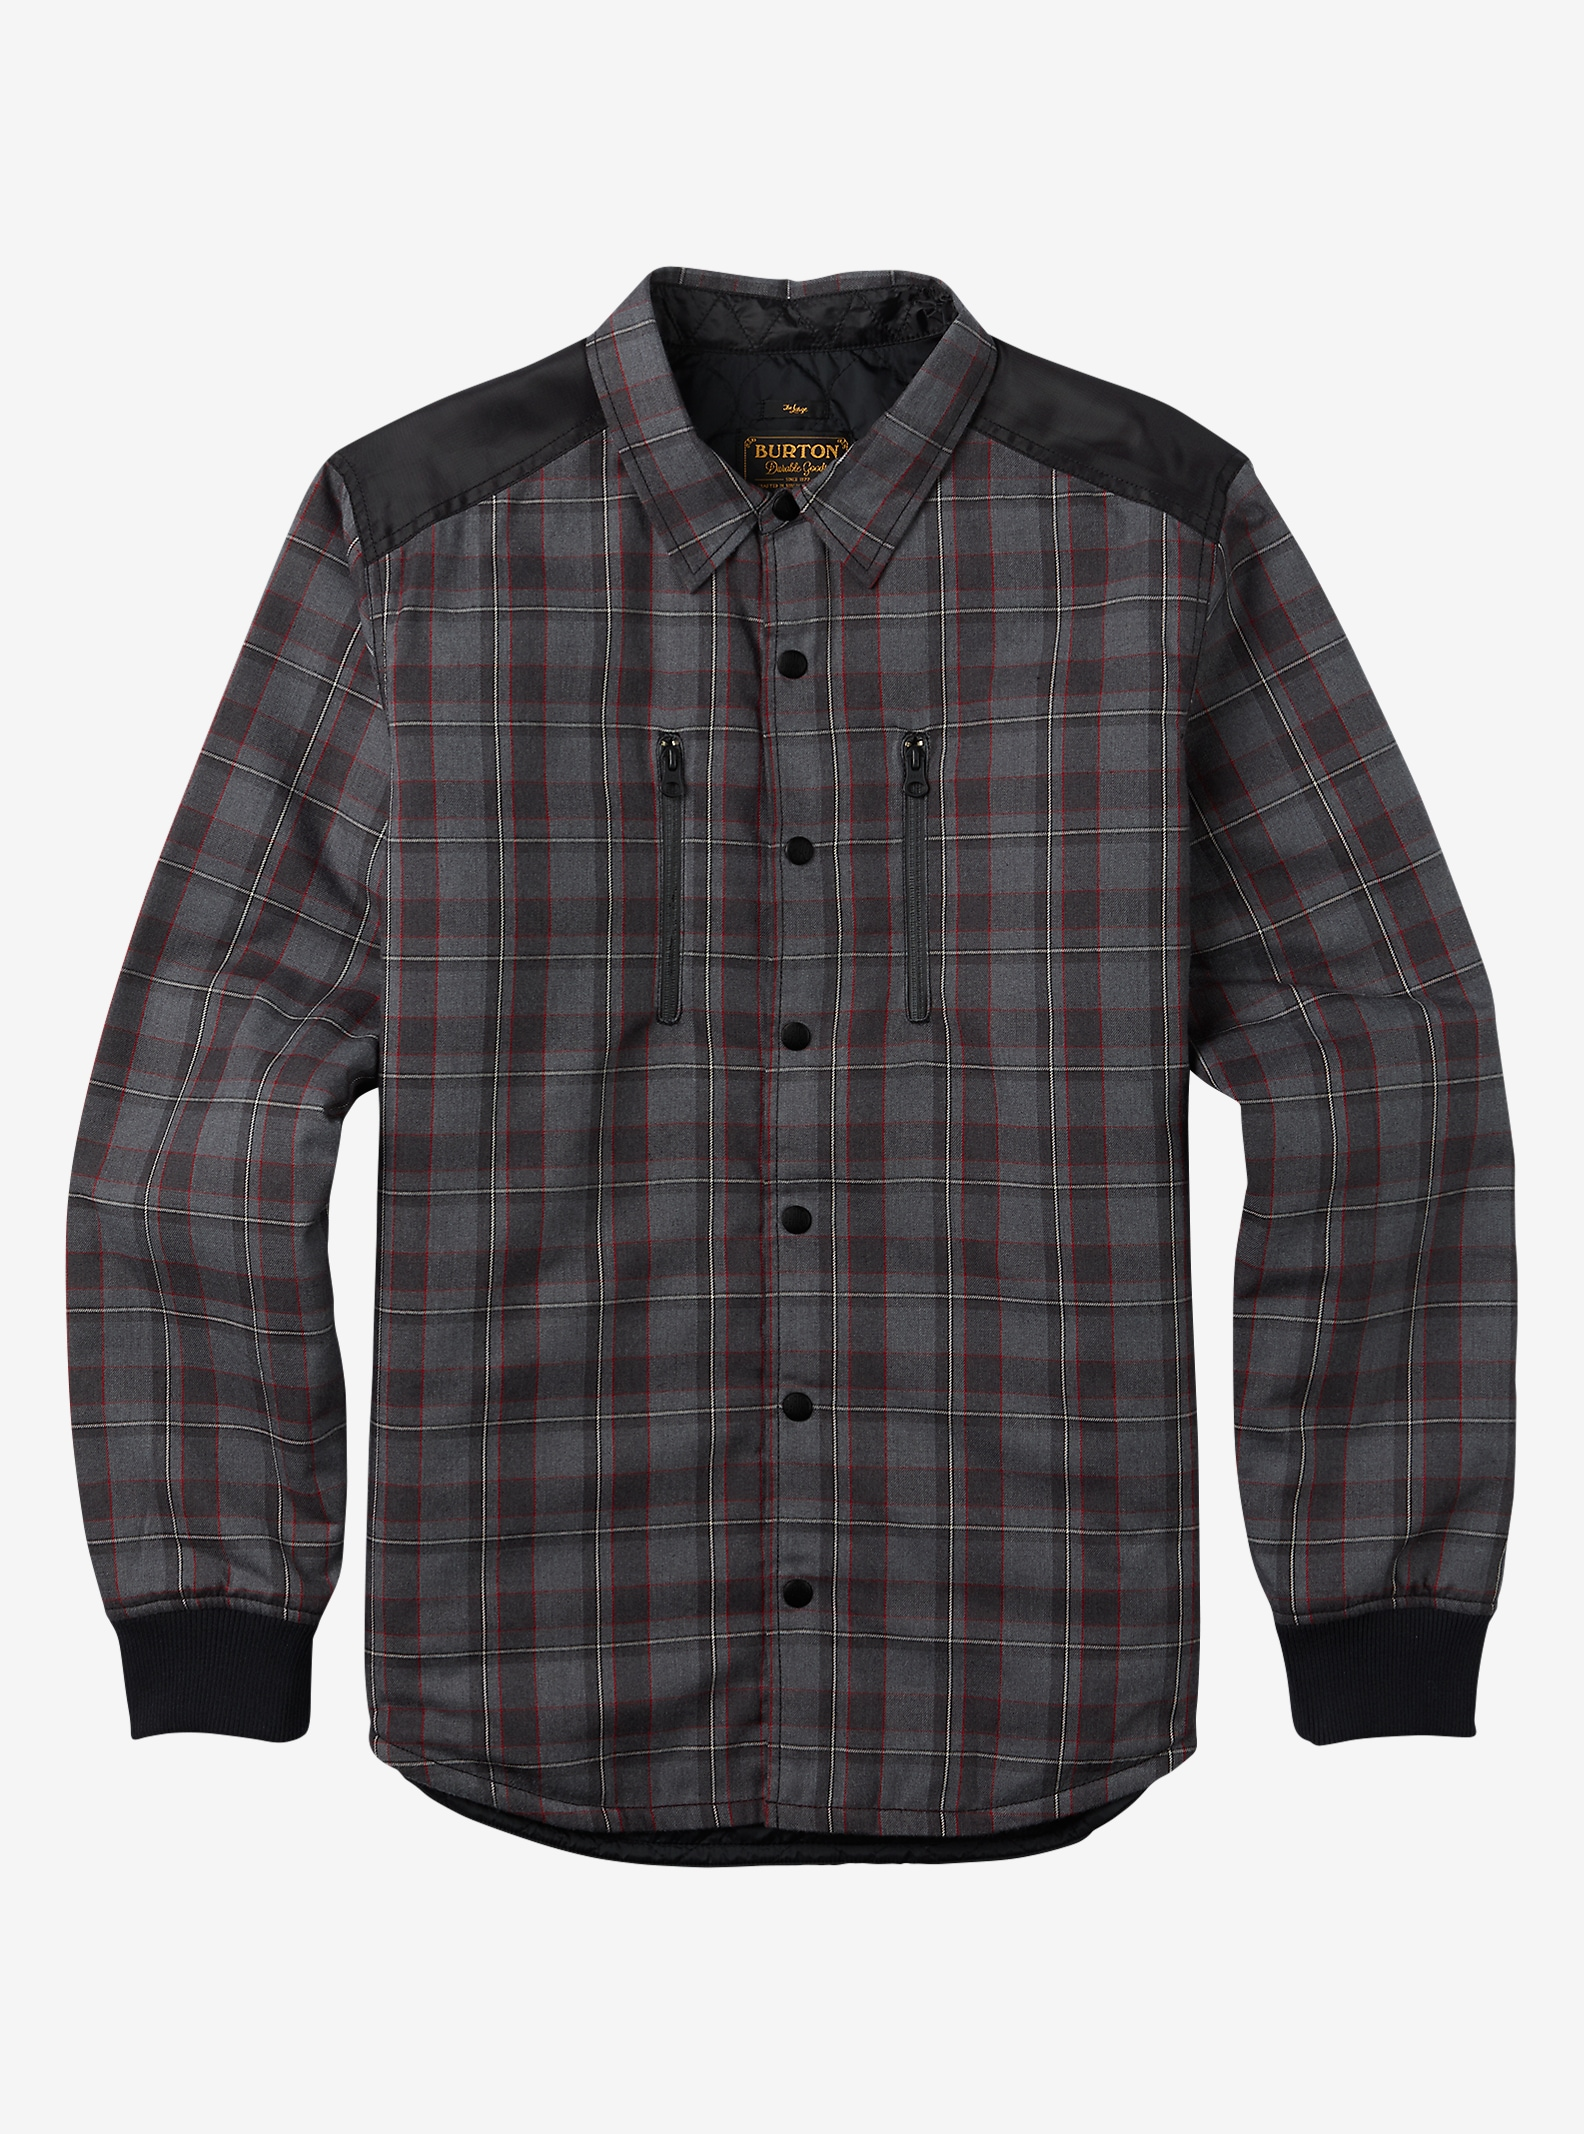 Burton Field Quilted Flannel shown in True Black Dumont Plaid